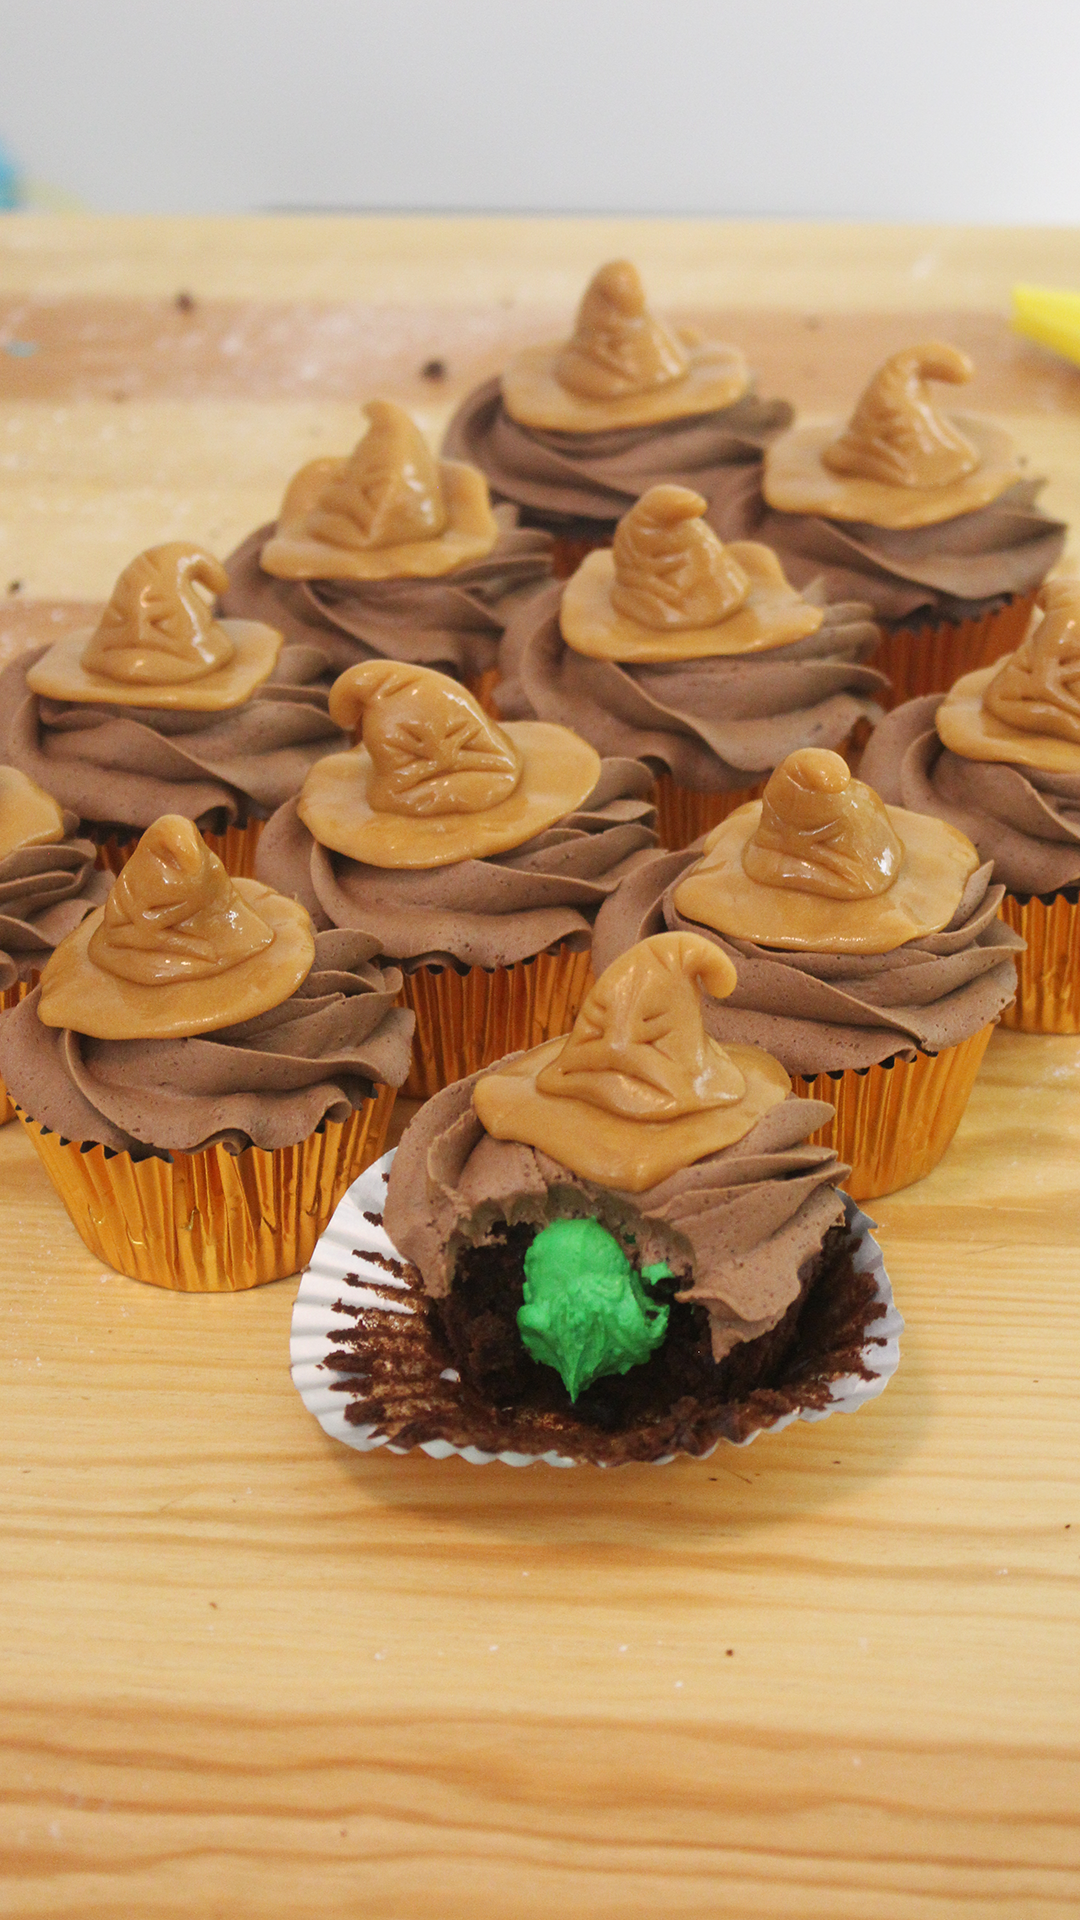 Do you belong to Gryffindor? Slytherin? Bite into these cupcakes to see which Harry Potter house you belong in!